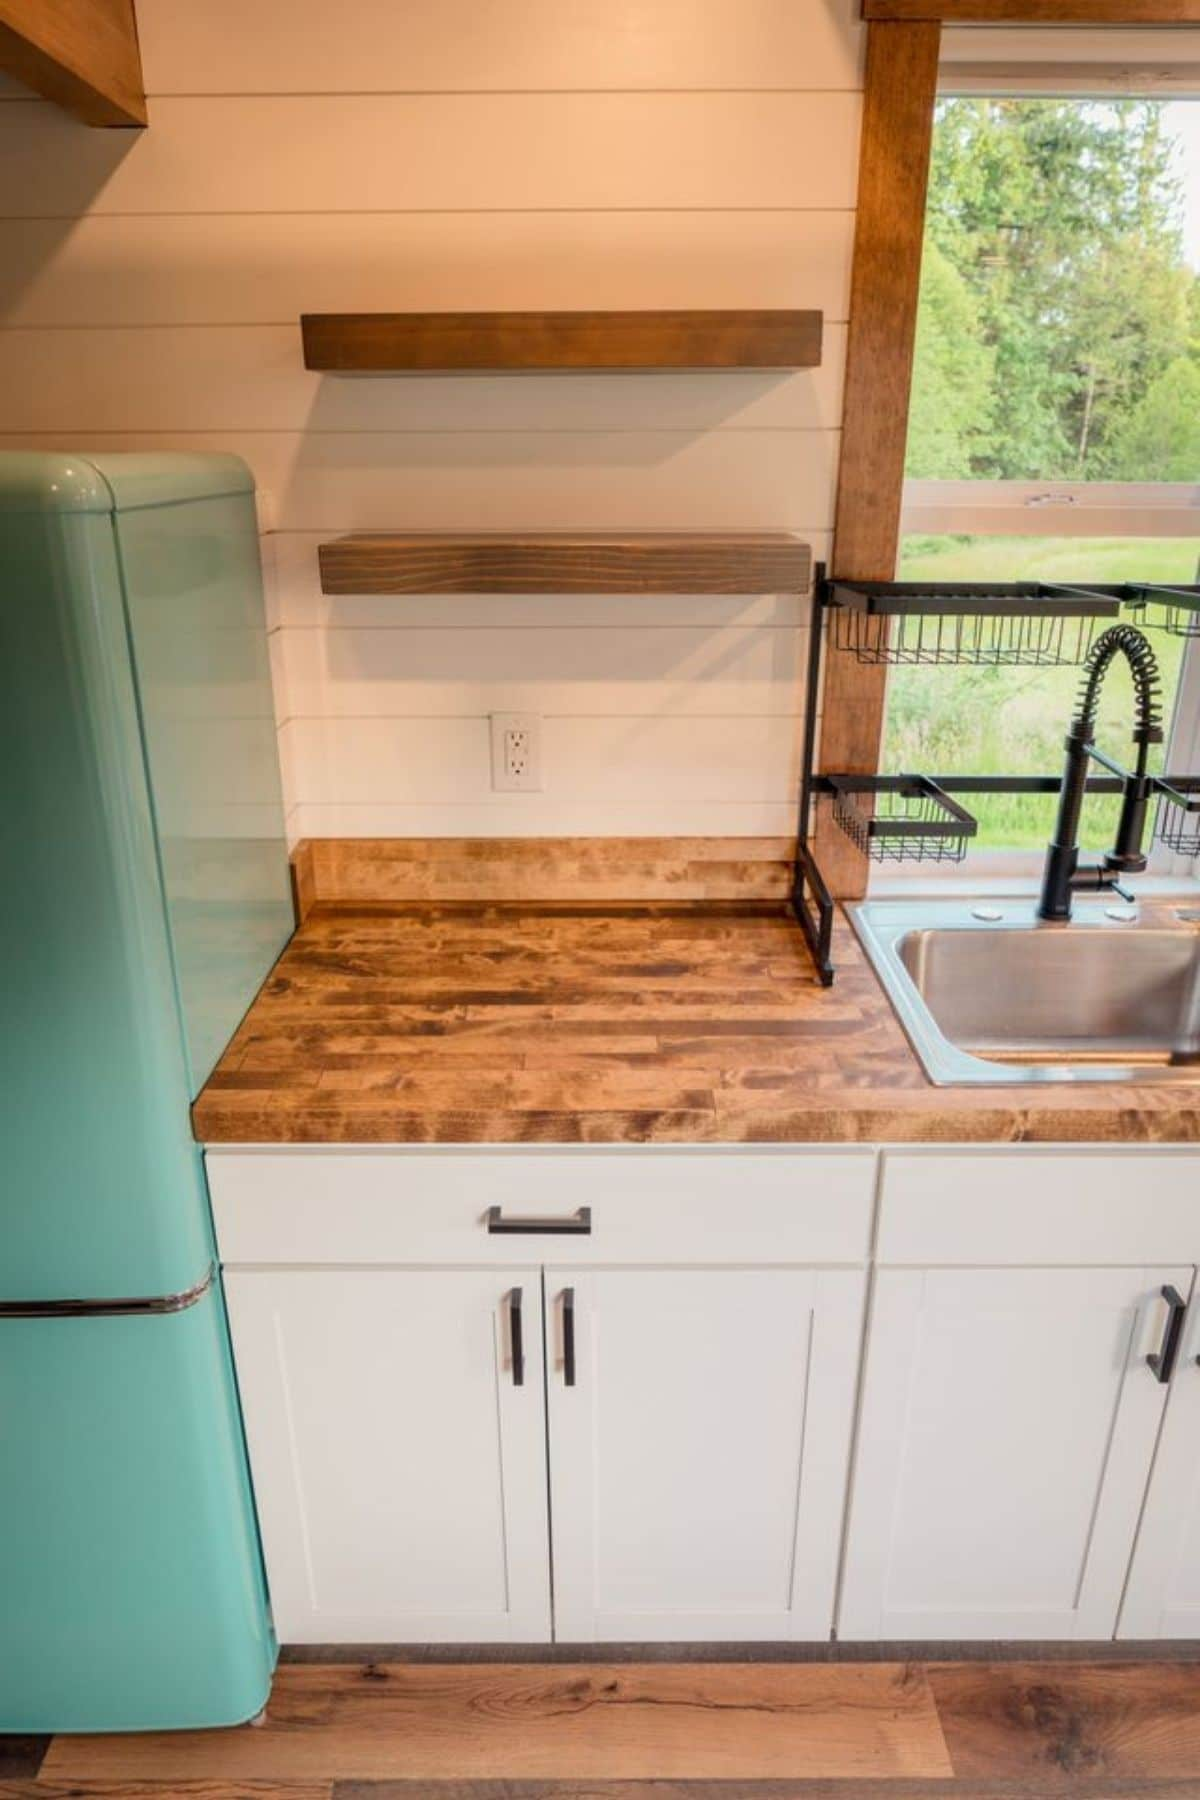 White cabinet with butcher block counter next to teal refrigerator